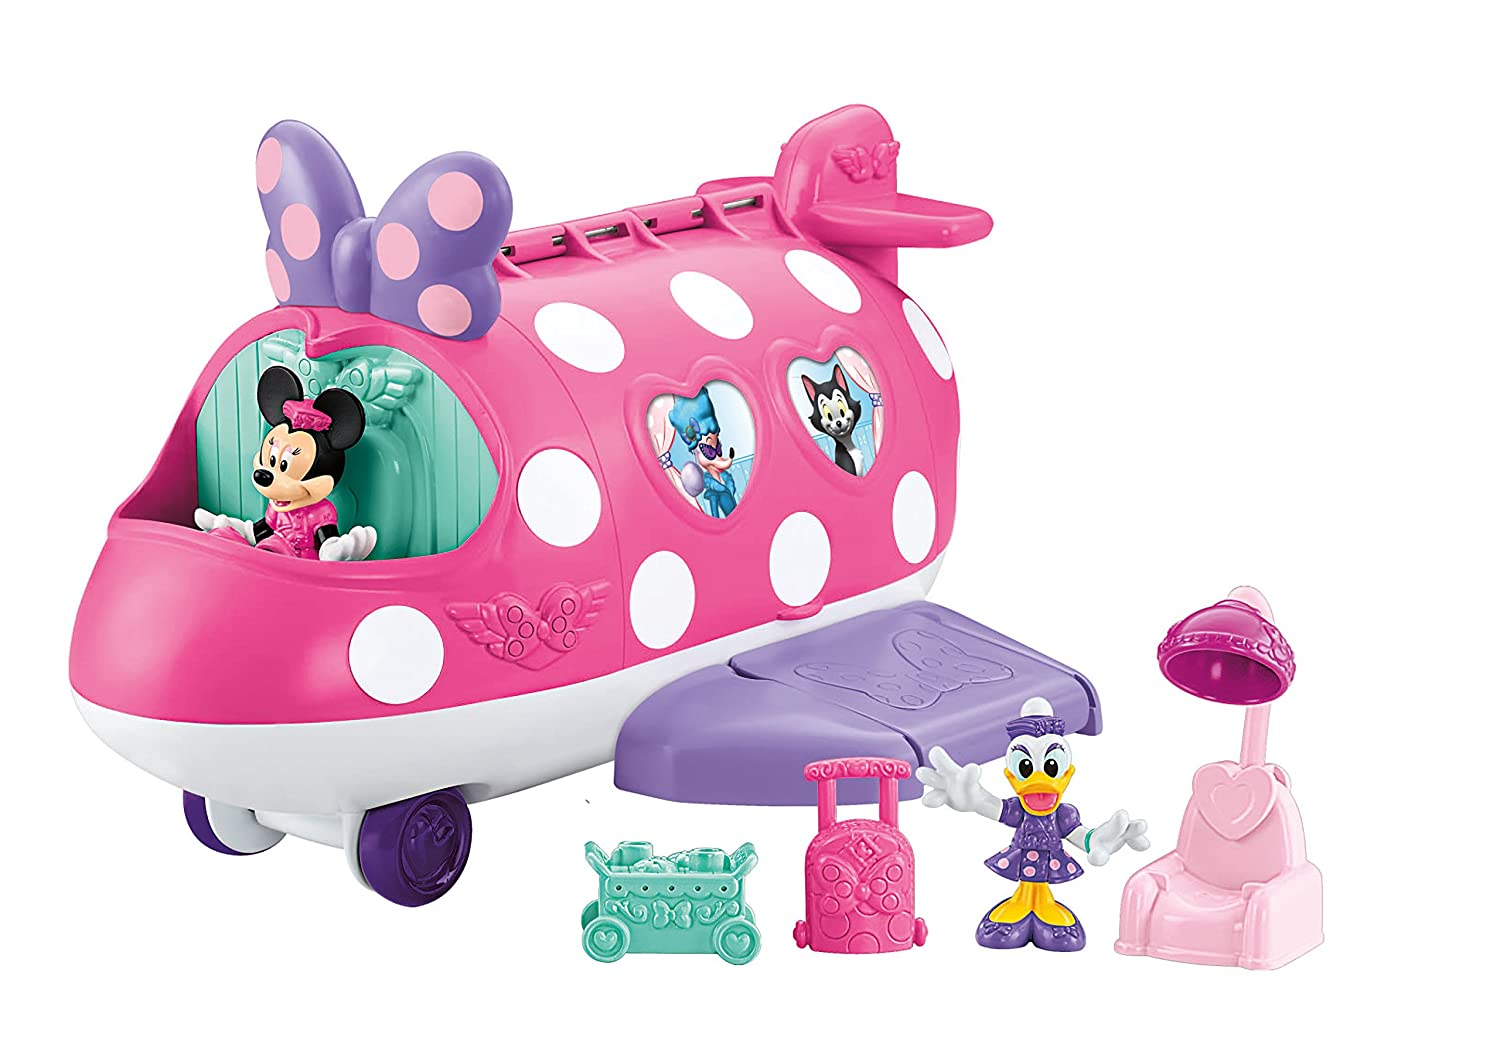 Minnie Mouse Toys : Pink minnie mouse jet airplane toys